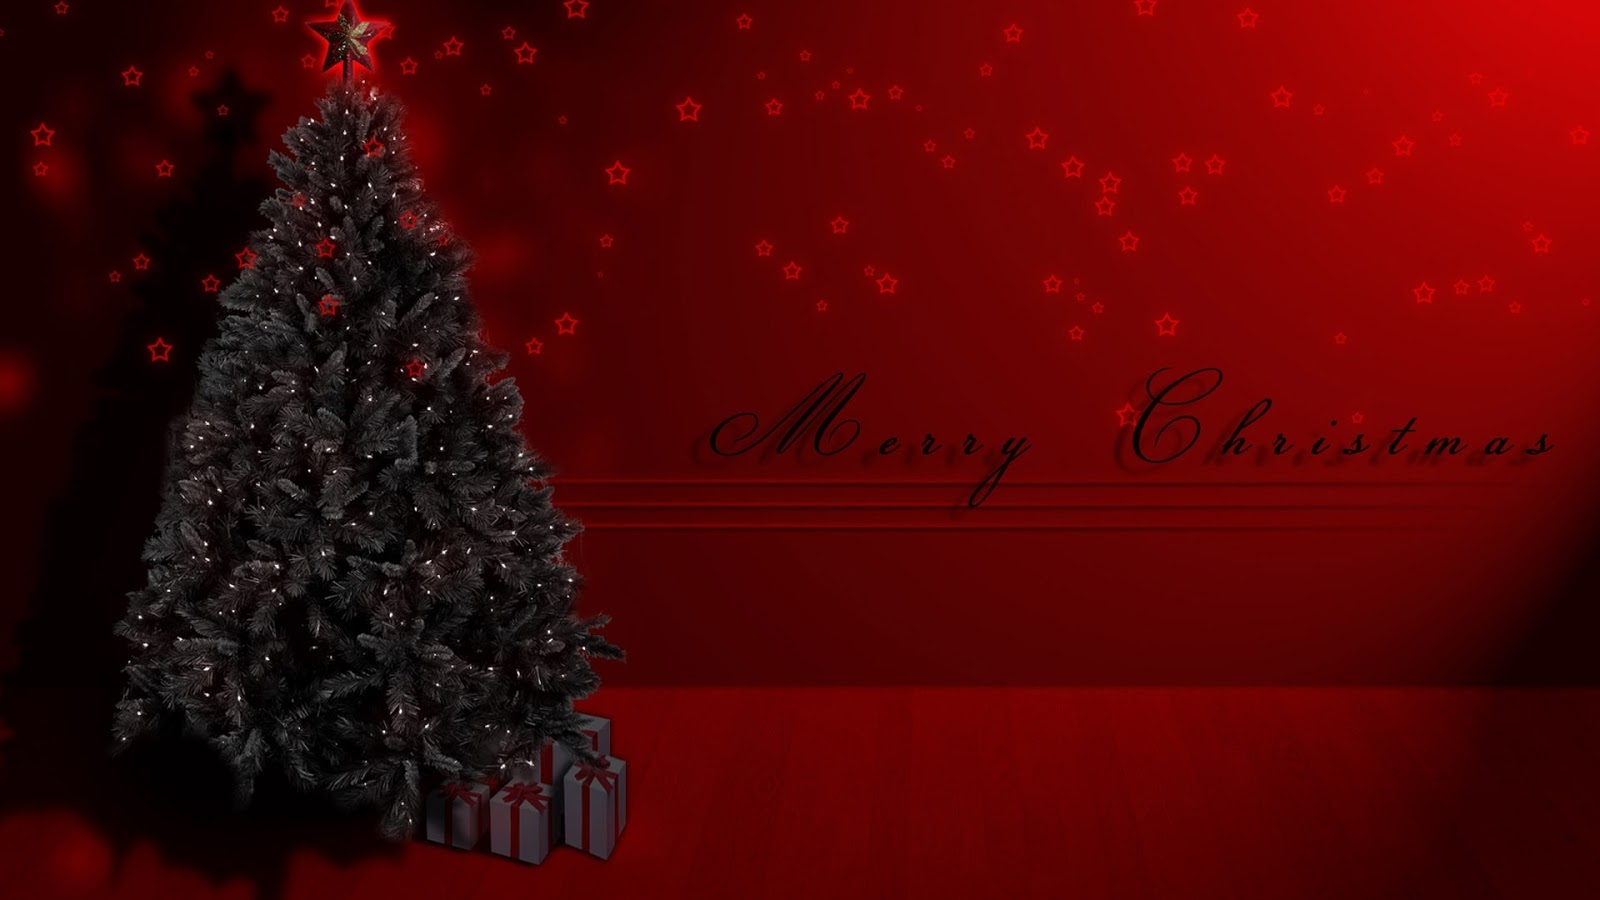 Christmas HD wallpapers 1080p   HD Wallpapers (High Definition)   Free Background